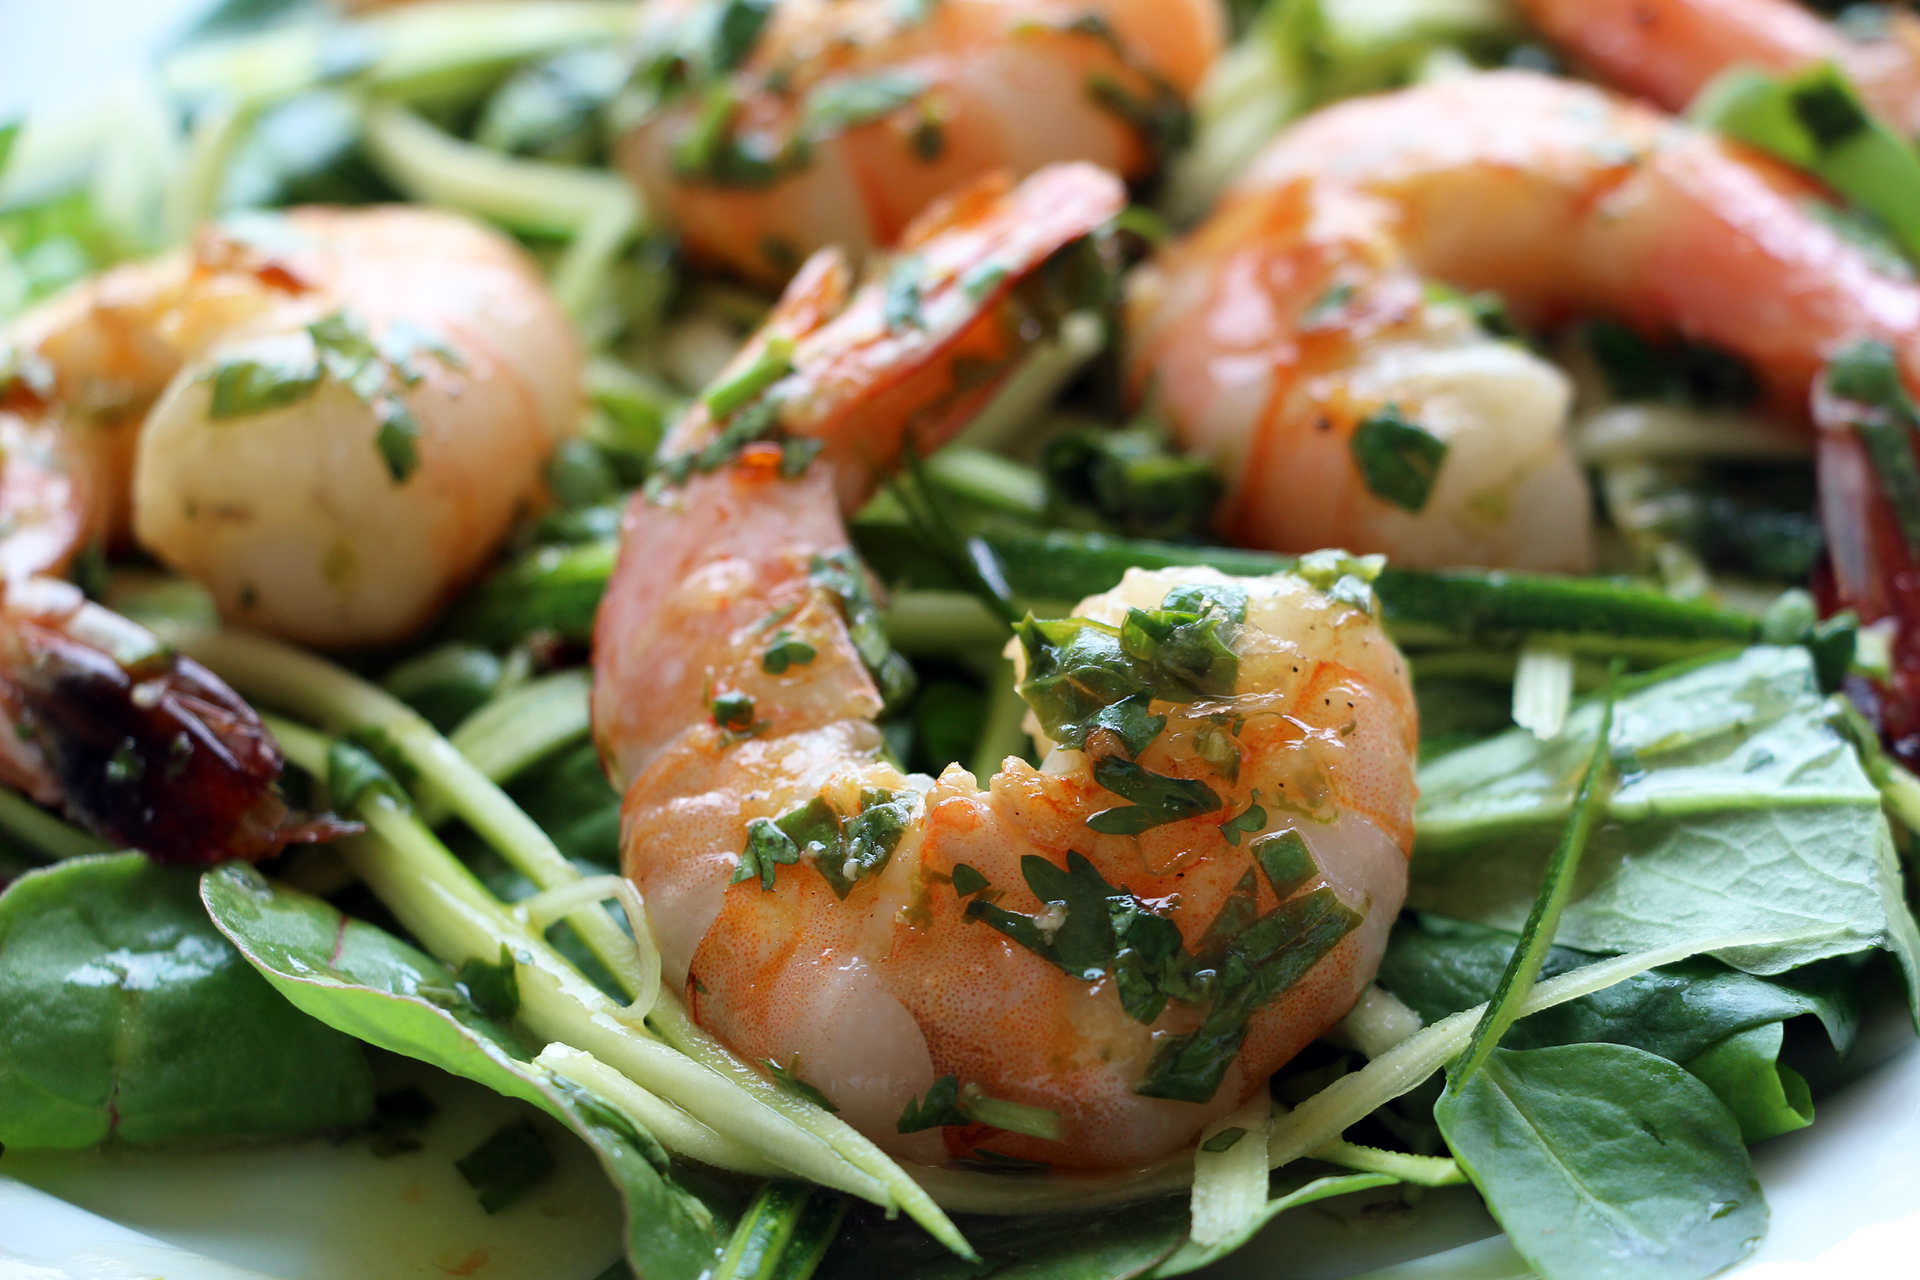 Grilled Shrimp Salad with Zucchini Noodles, Baby Greens, and Spicy Thai Basil Vinaigrette